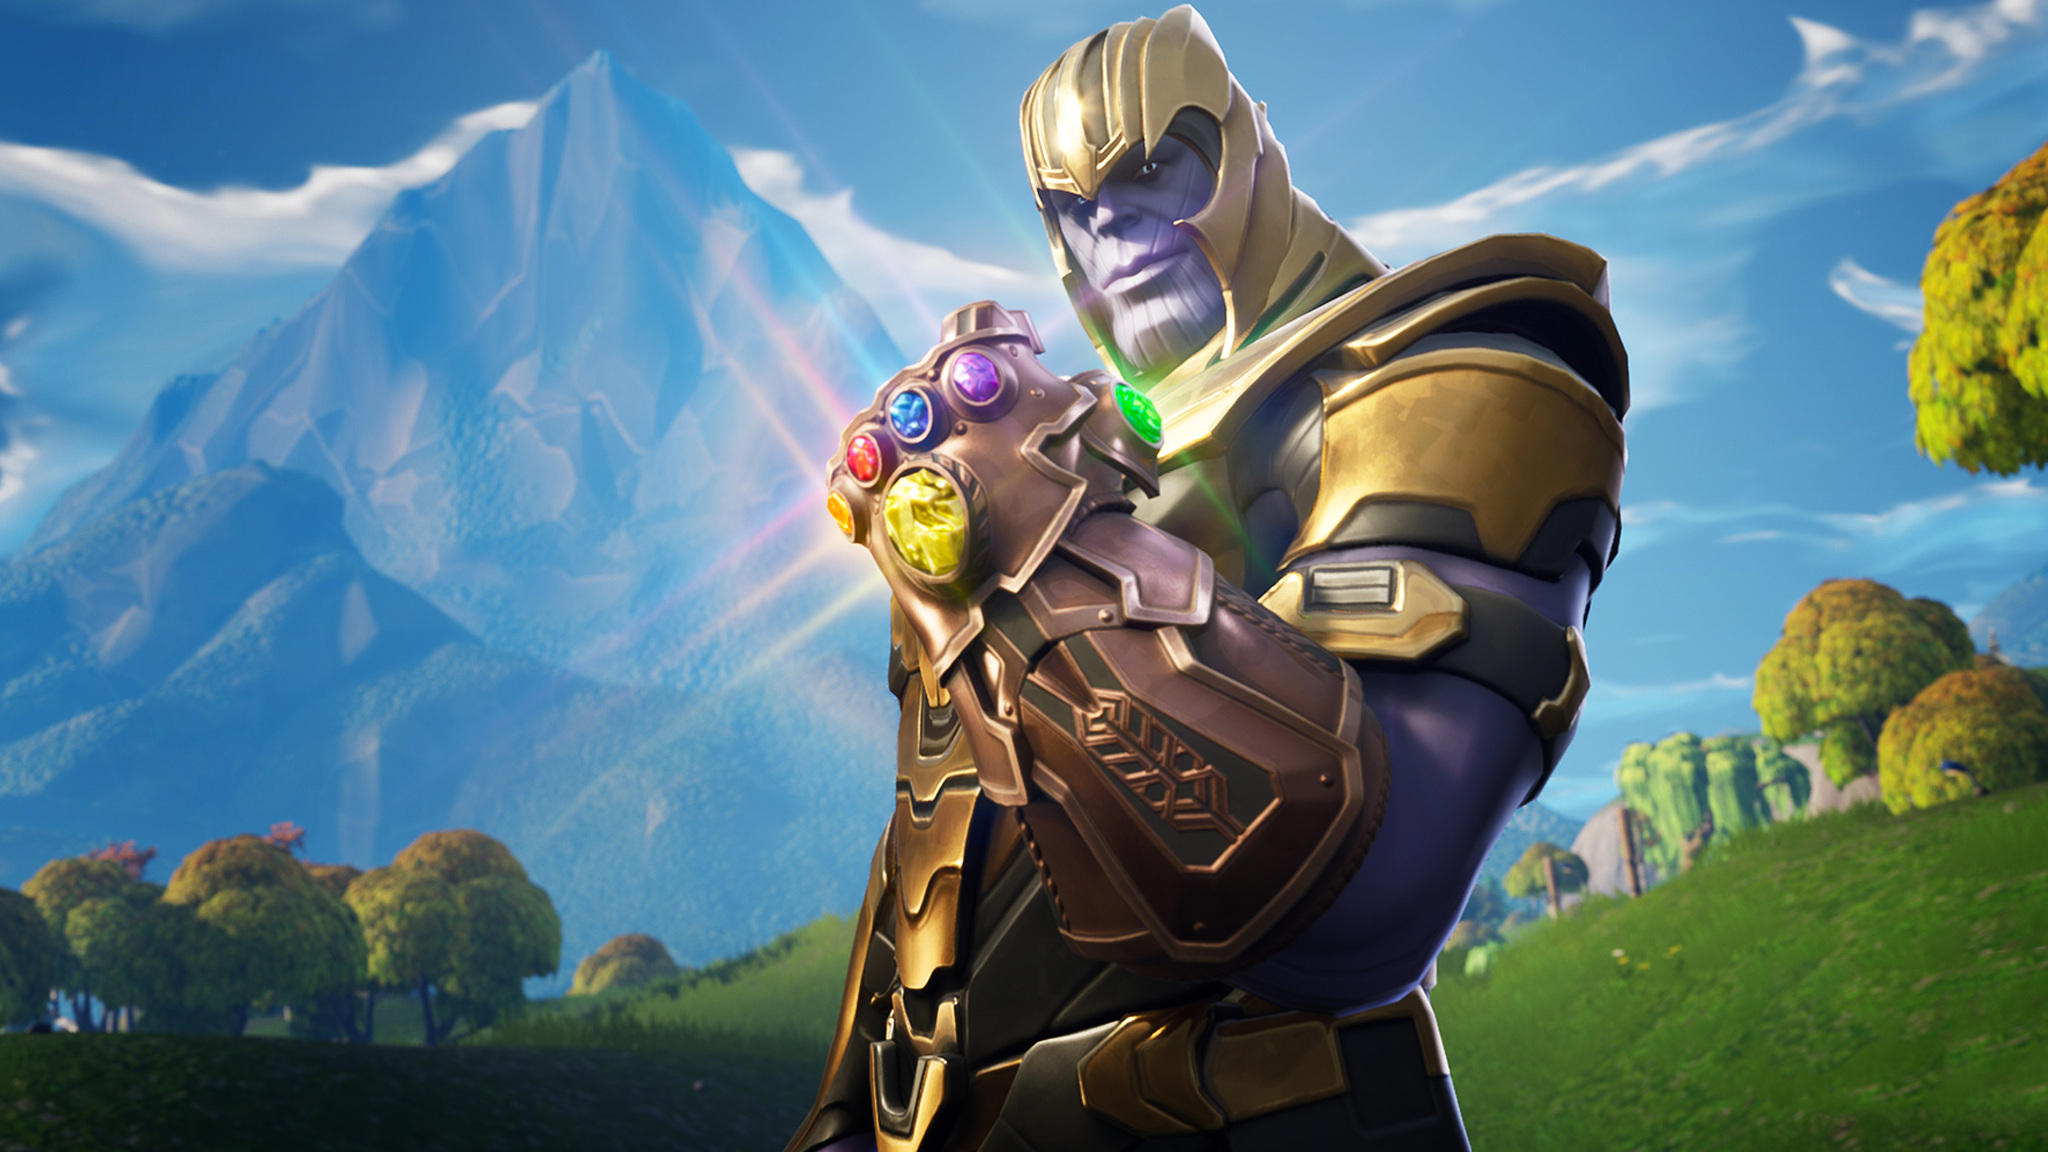 2048x1152 Thanos In Fortnite Battle Royale 2048x1152